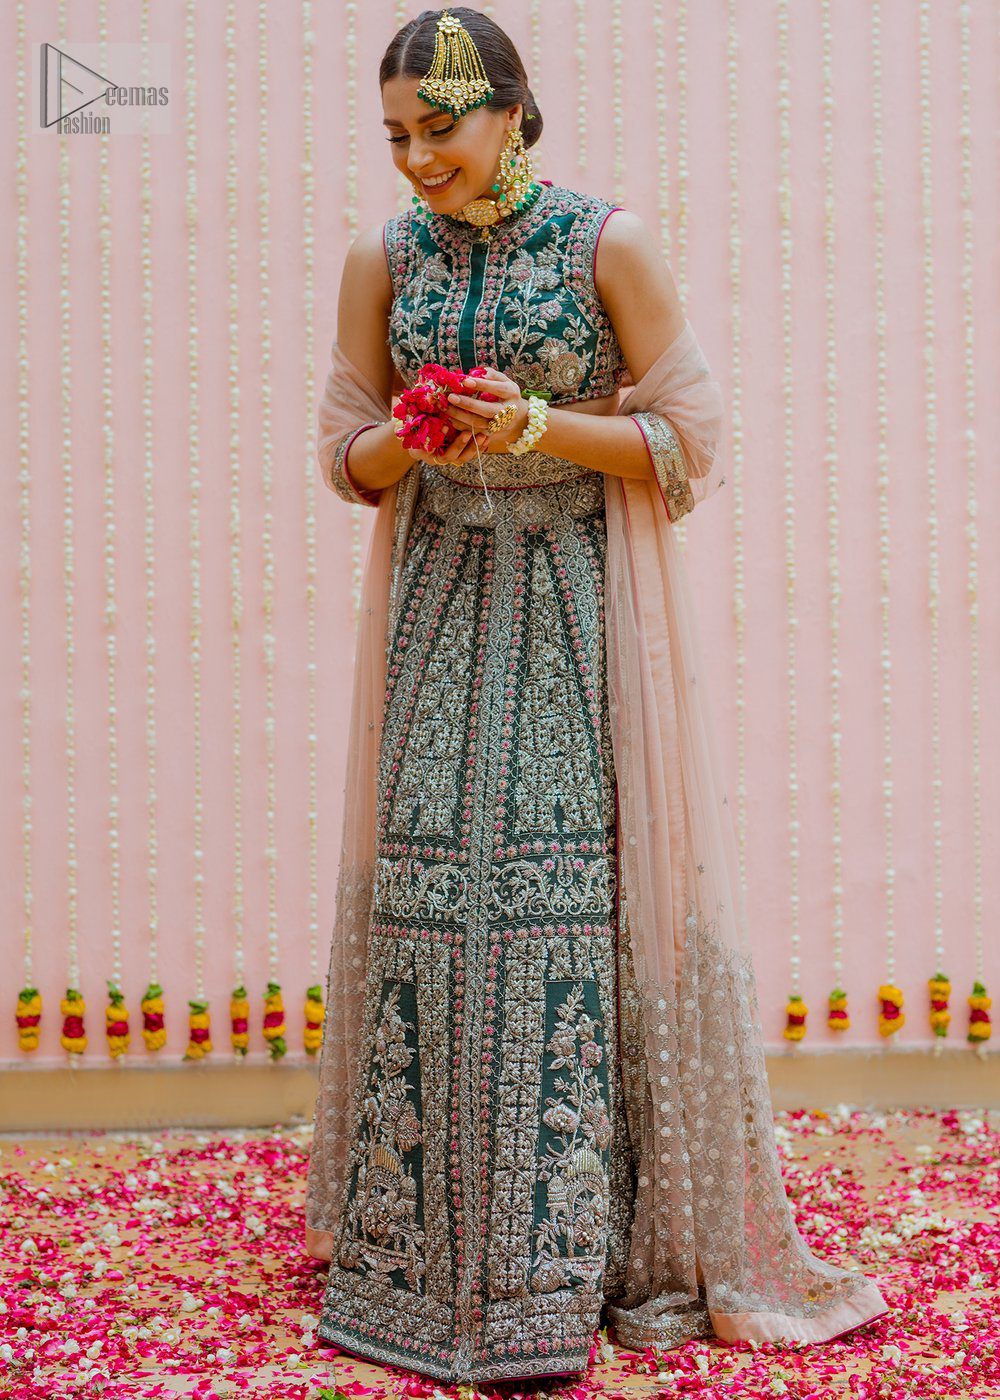 Bottle Green Velvet Blouse Lehenga Tan Dupatta. Blouse is beautifully decorated with multiple color floral embroidery.